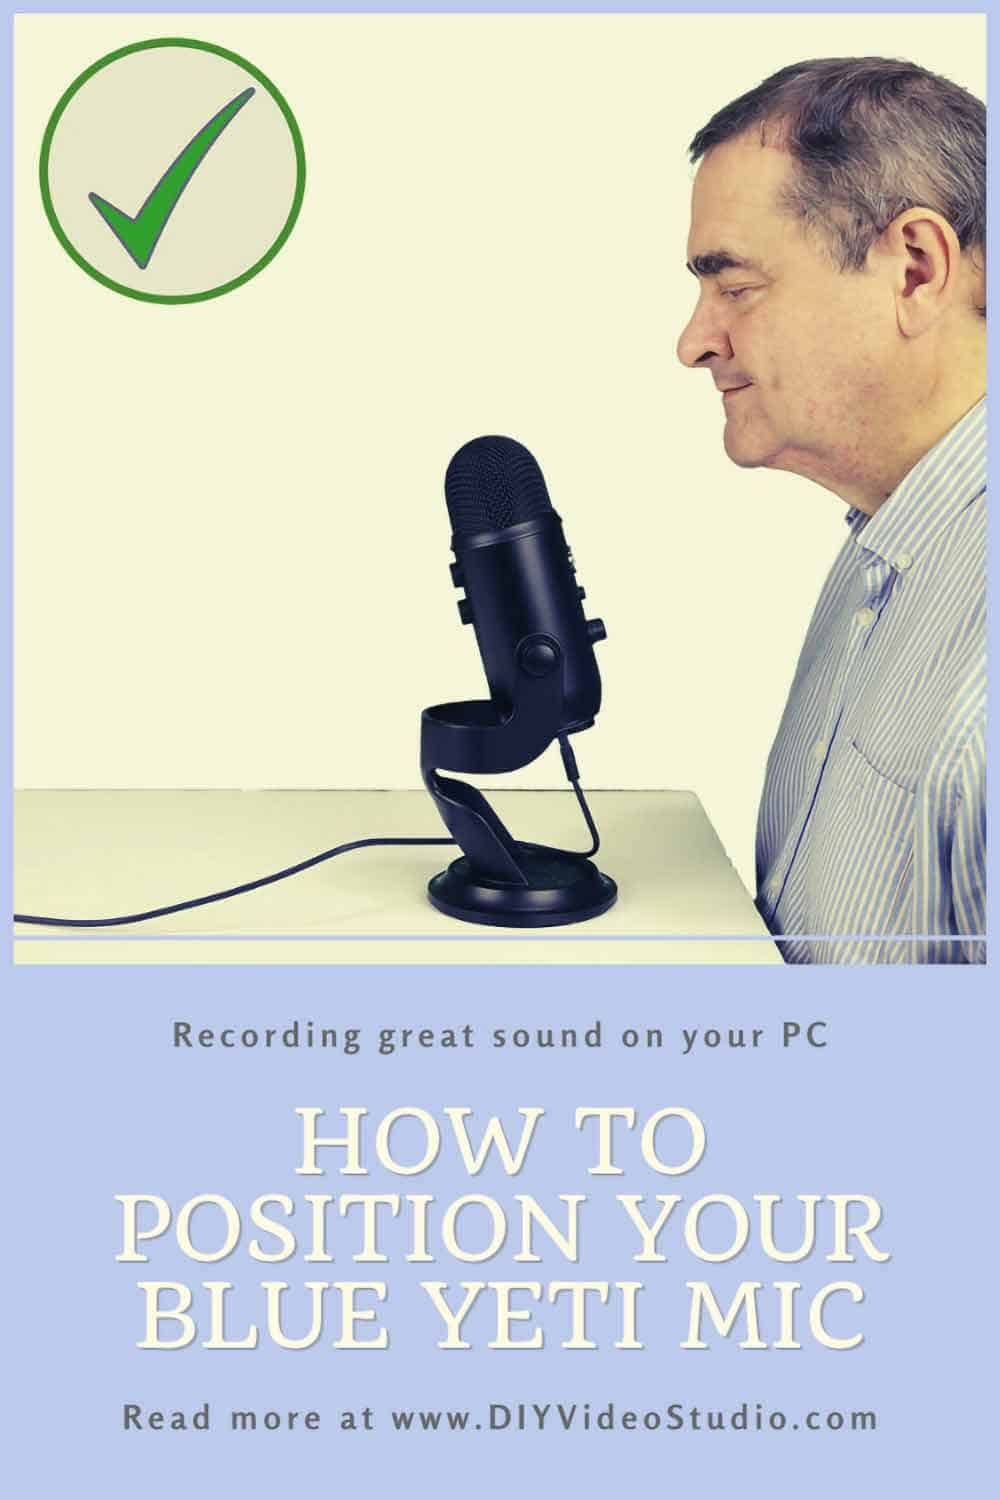 How to position your Blue Yeti Mic - Pinterest Graphic